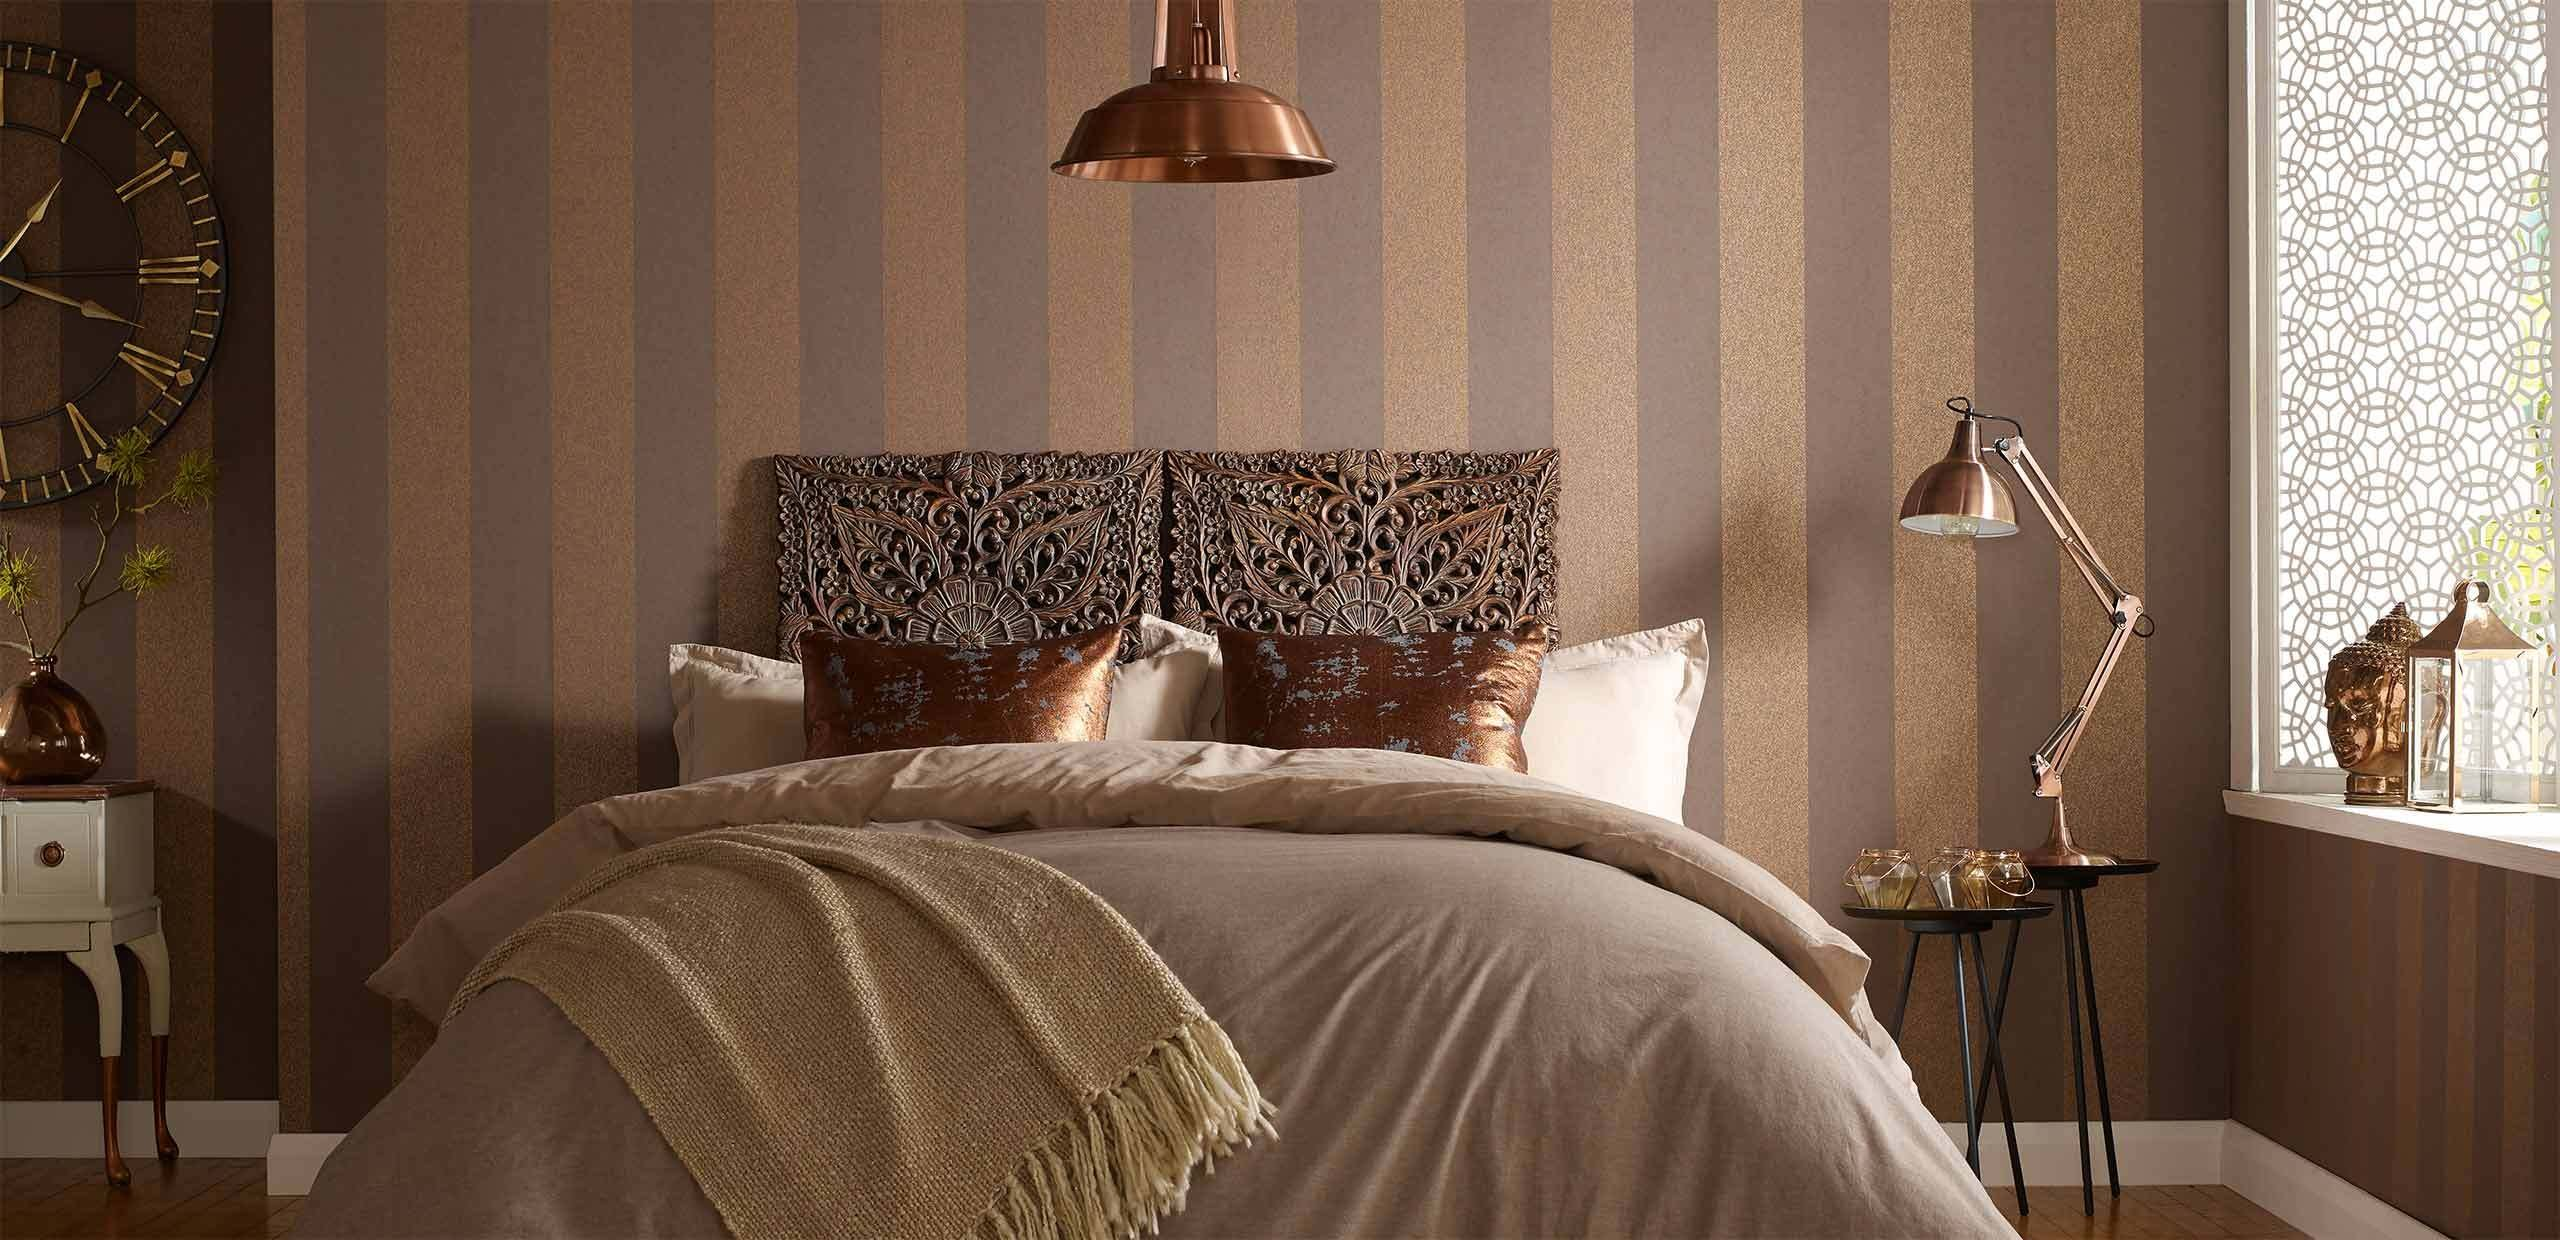 Best Bedroom Wallpaper Ideas Bedroom Wallpaper Feature Wall Graham Brown With Pictures